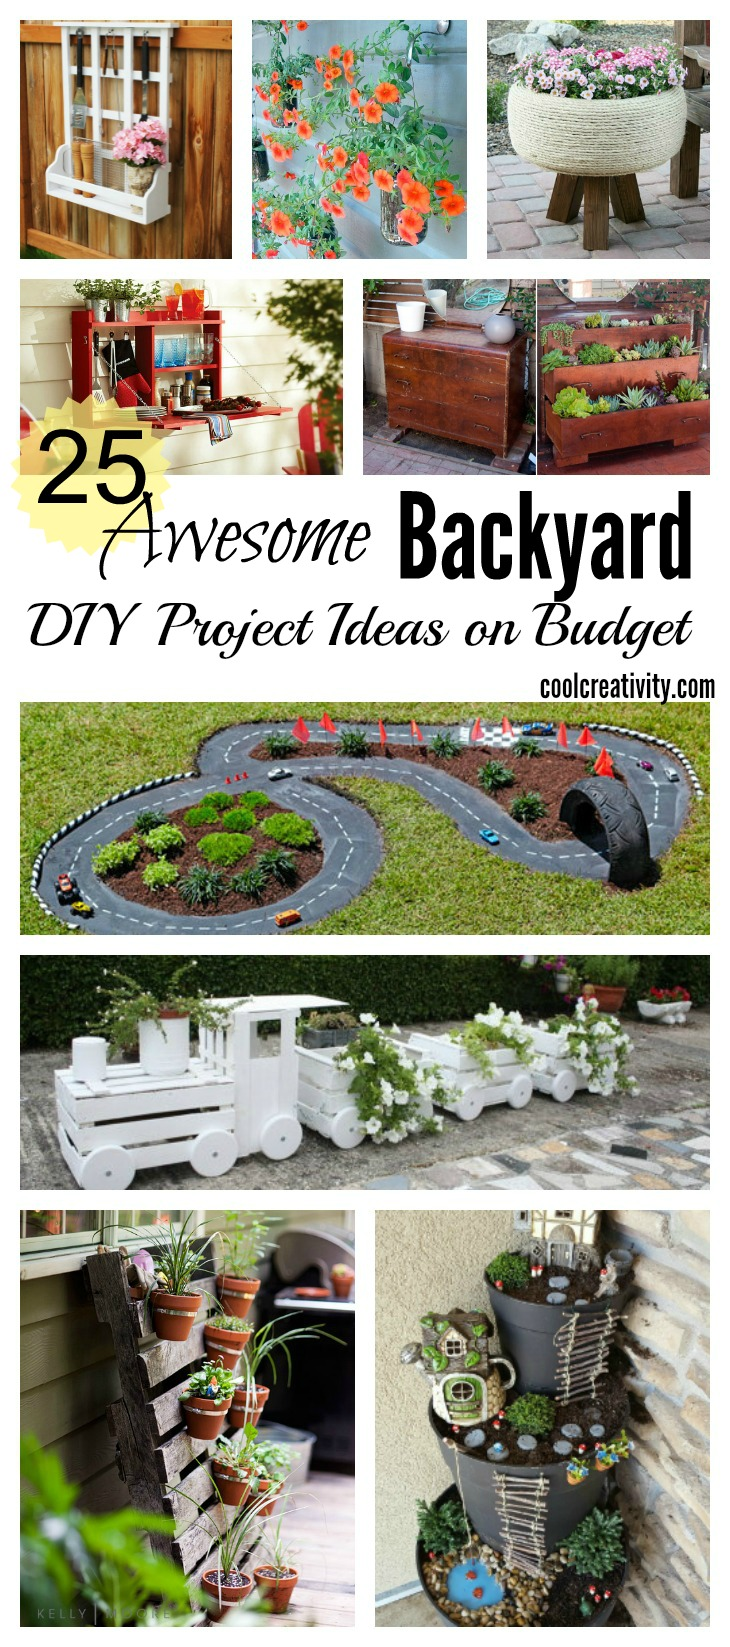 25 awesome backyard diy project ideas on budget for Epic diy projects